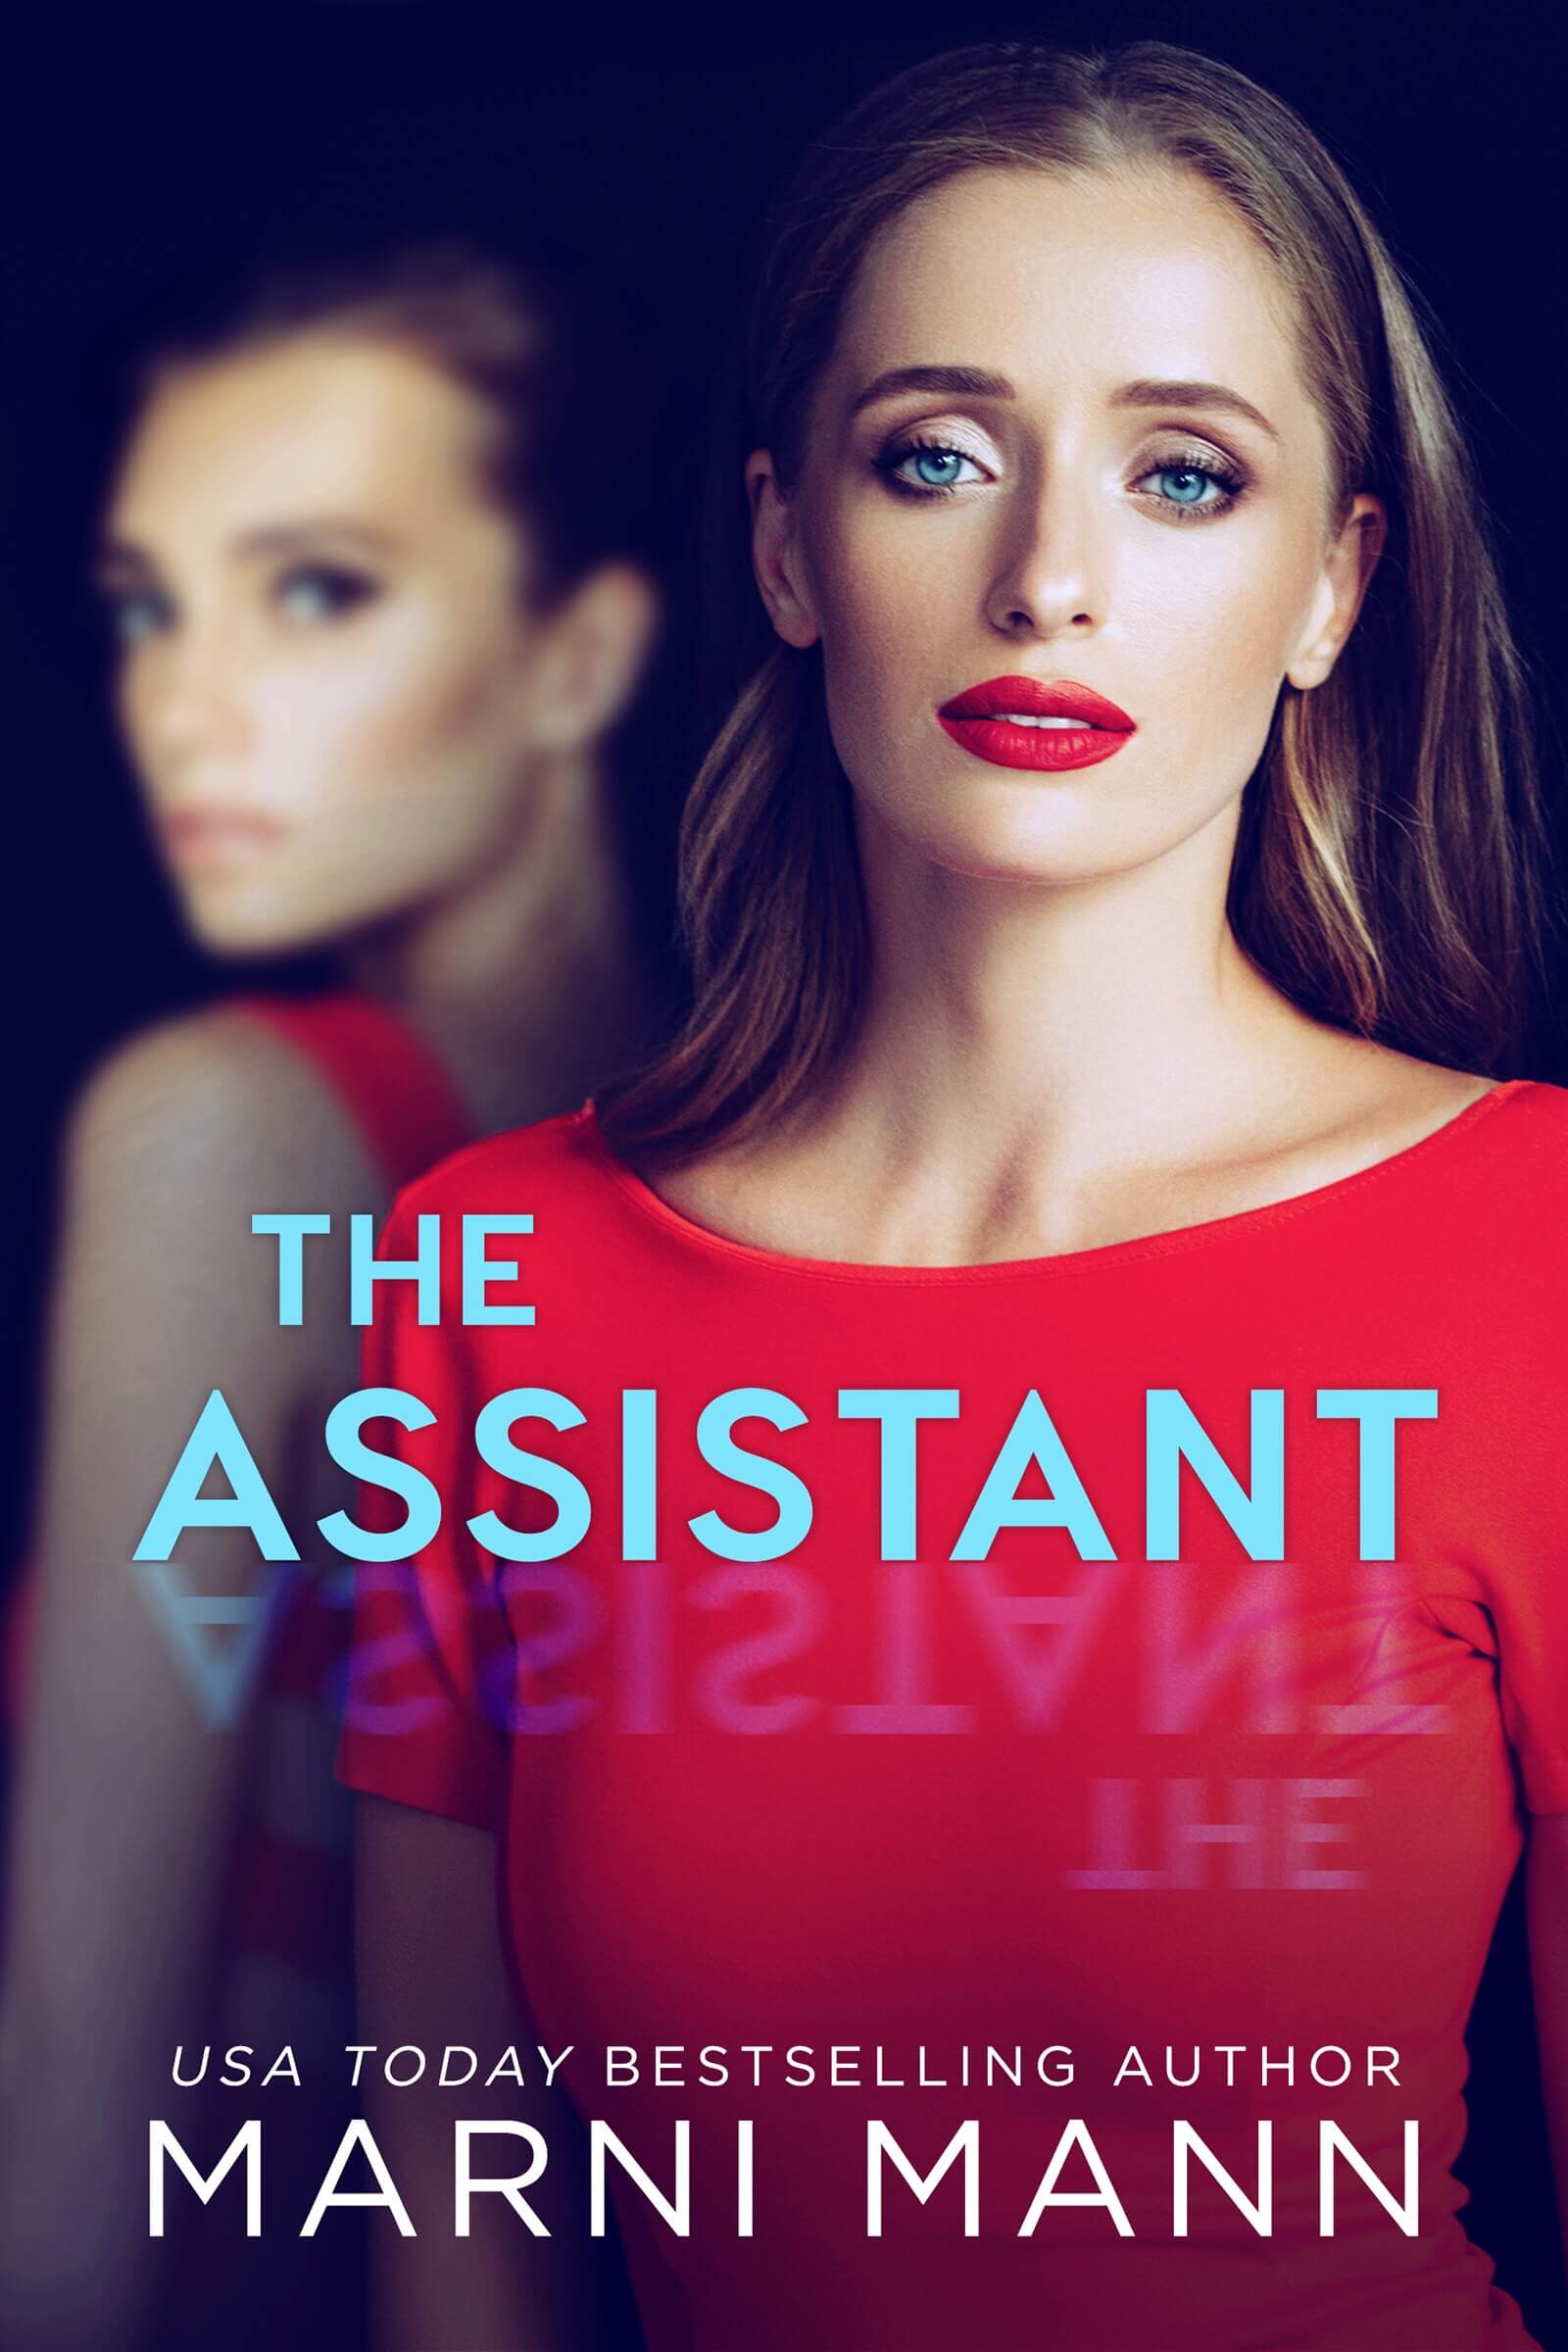 Release Blitz * The Assistant by Marni Mann * It's Live!!!